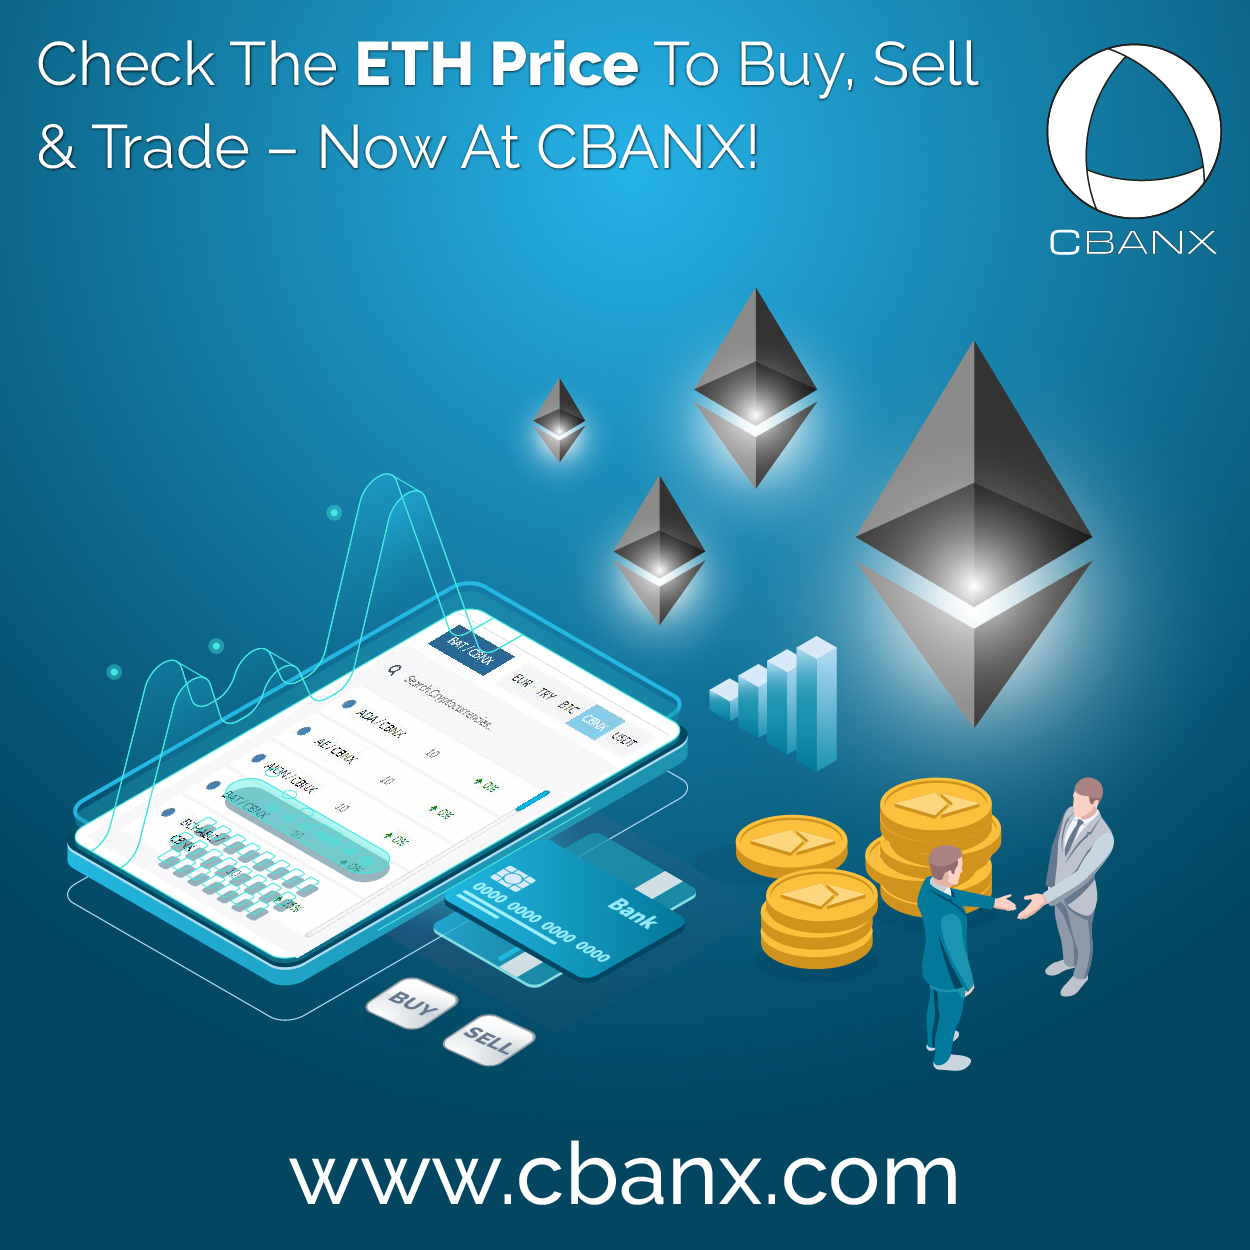 Check The ETH Price To Buy, Sell And Trade – Now At CBANX!